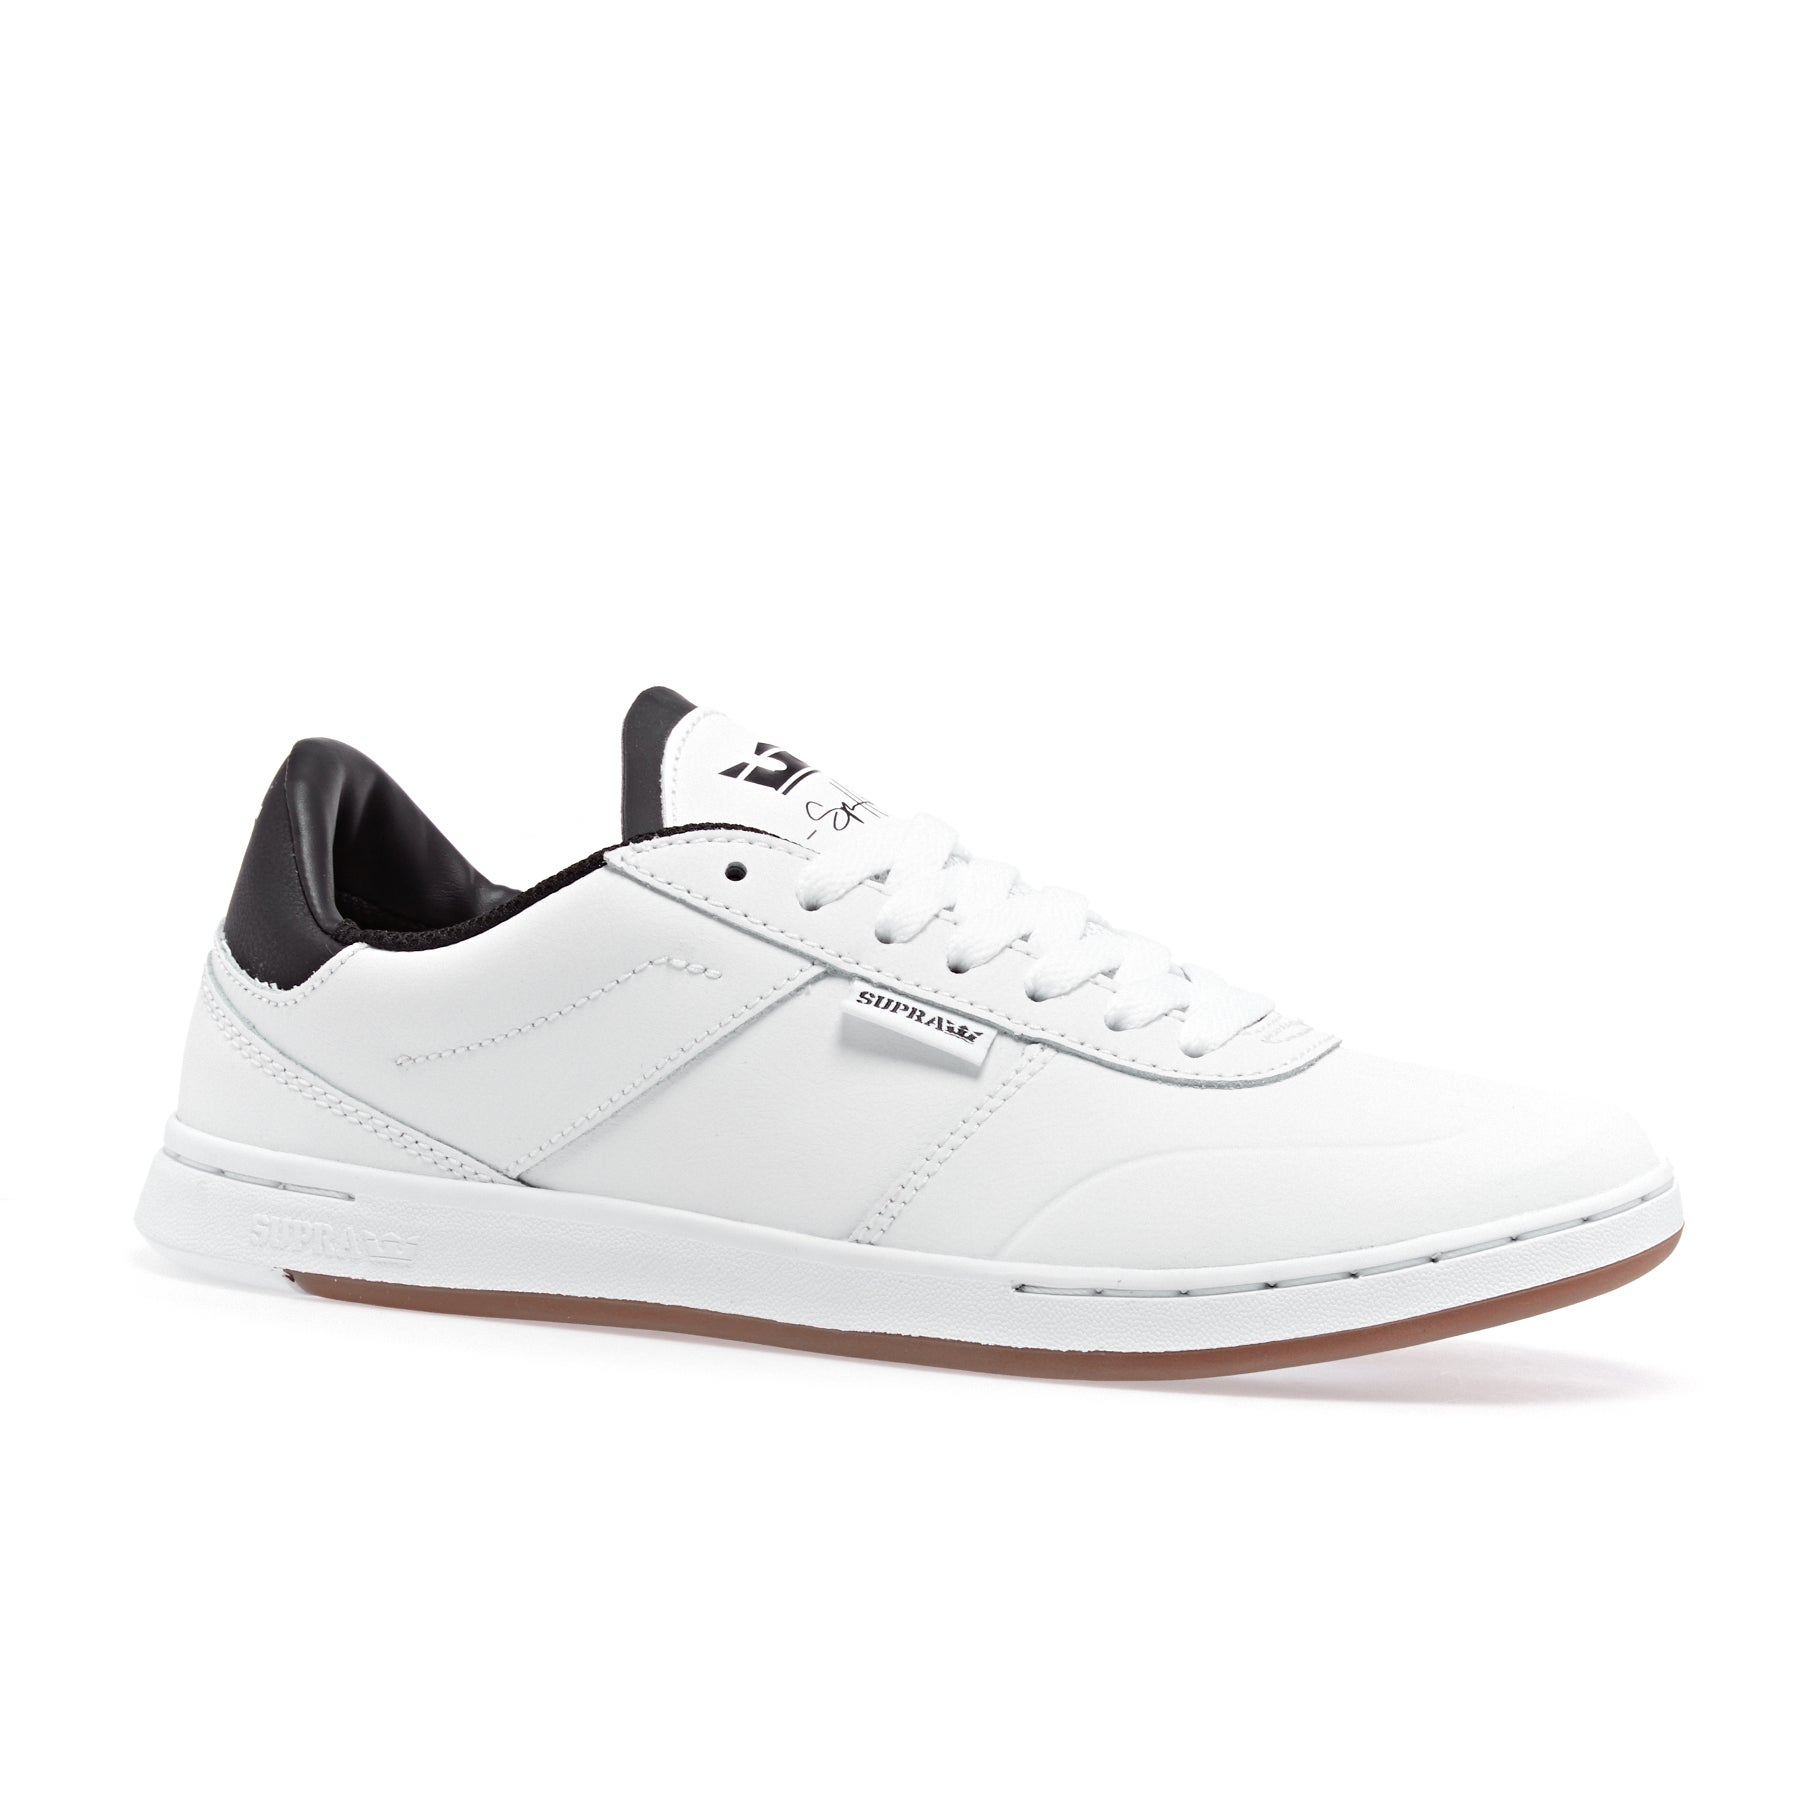 3cc8325f21a Supra Elevate Shoes | Free Delivery* on All Orders